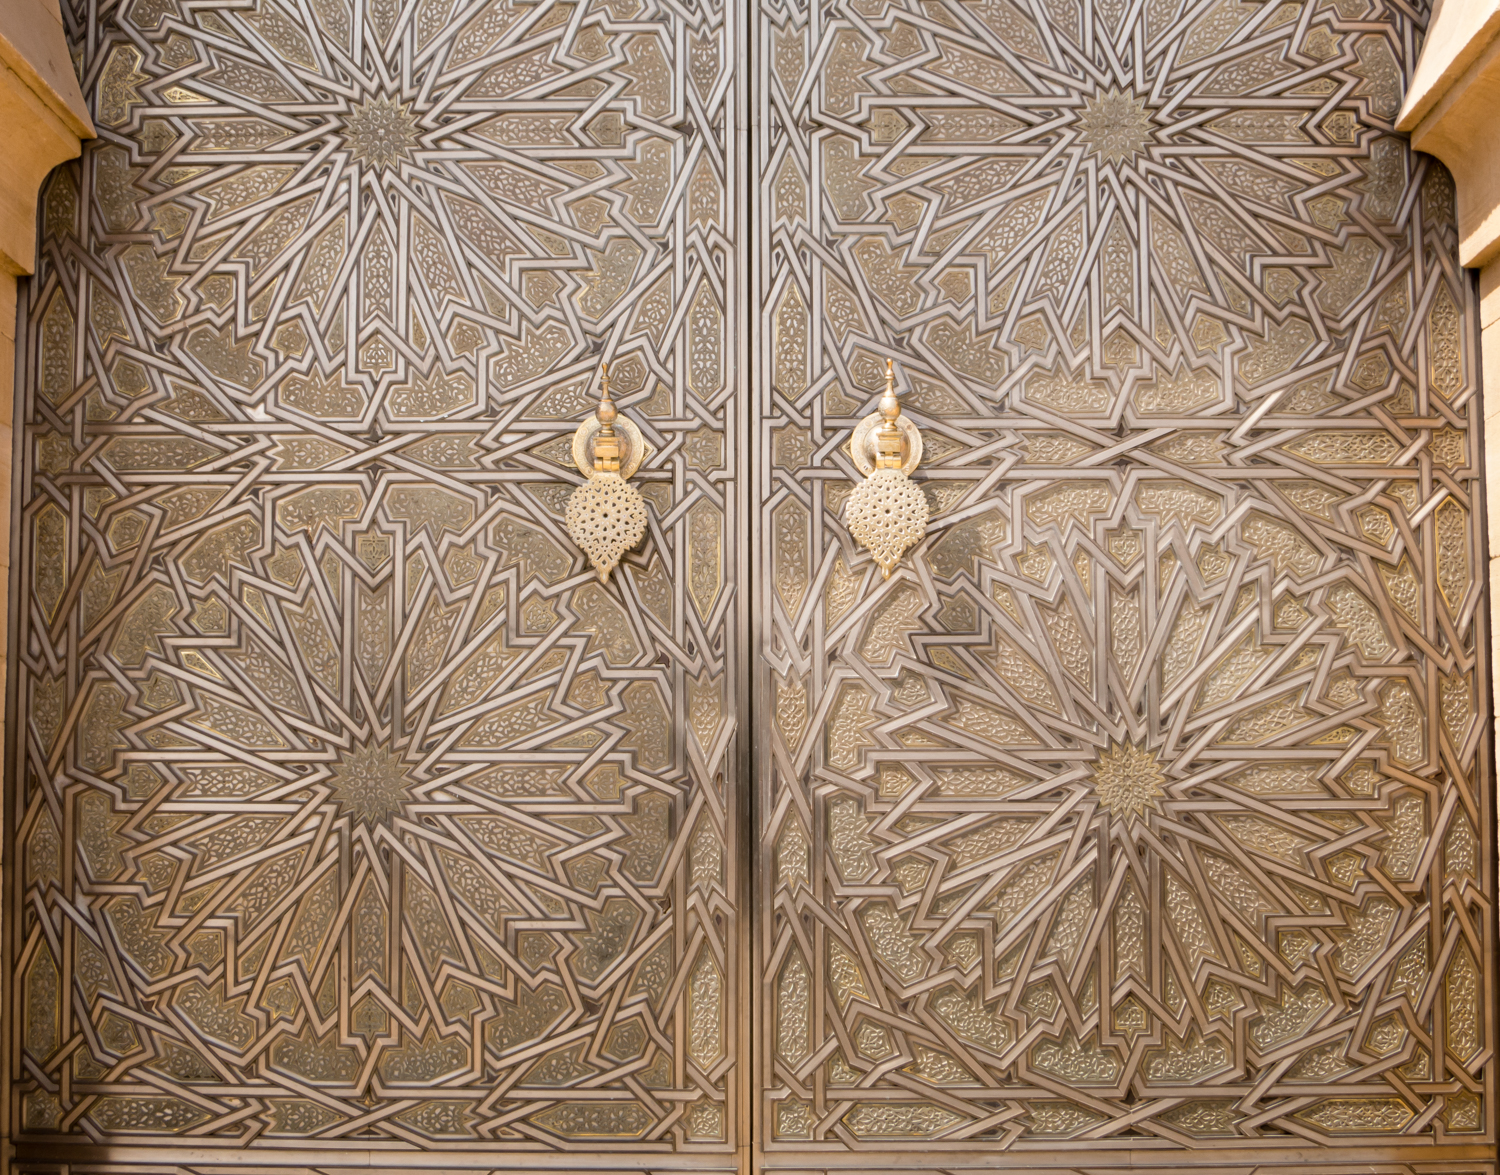 Bronze doors at the ceremonial entrance to Palais Royal (Royal Palace) Casablanca & Royal Palace | Where in the world is Riccardo?